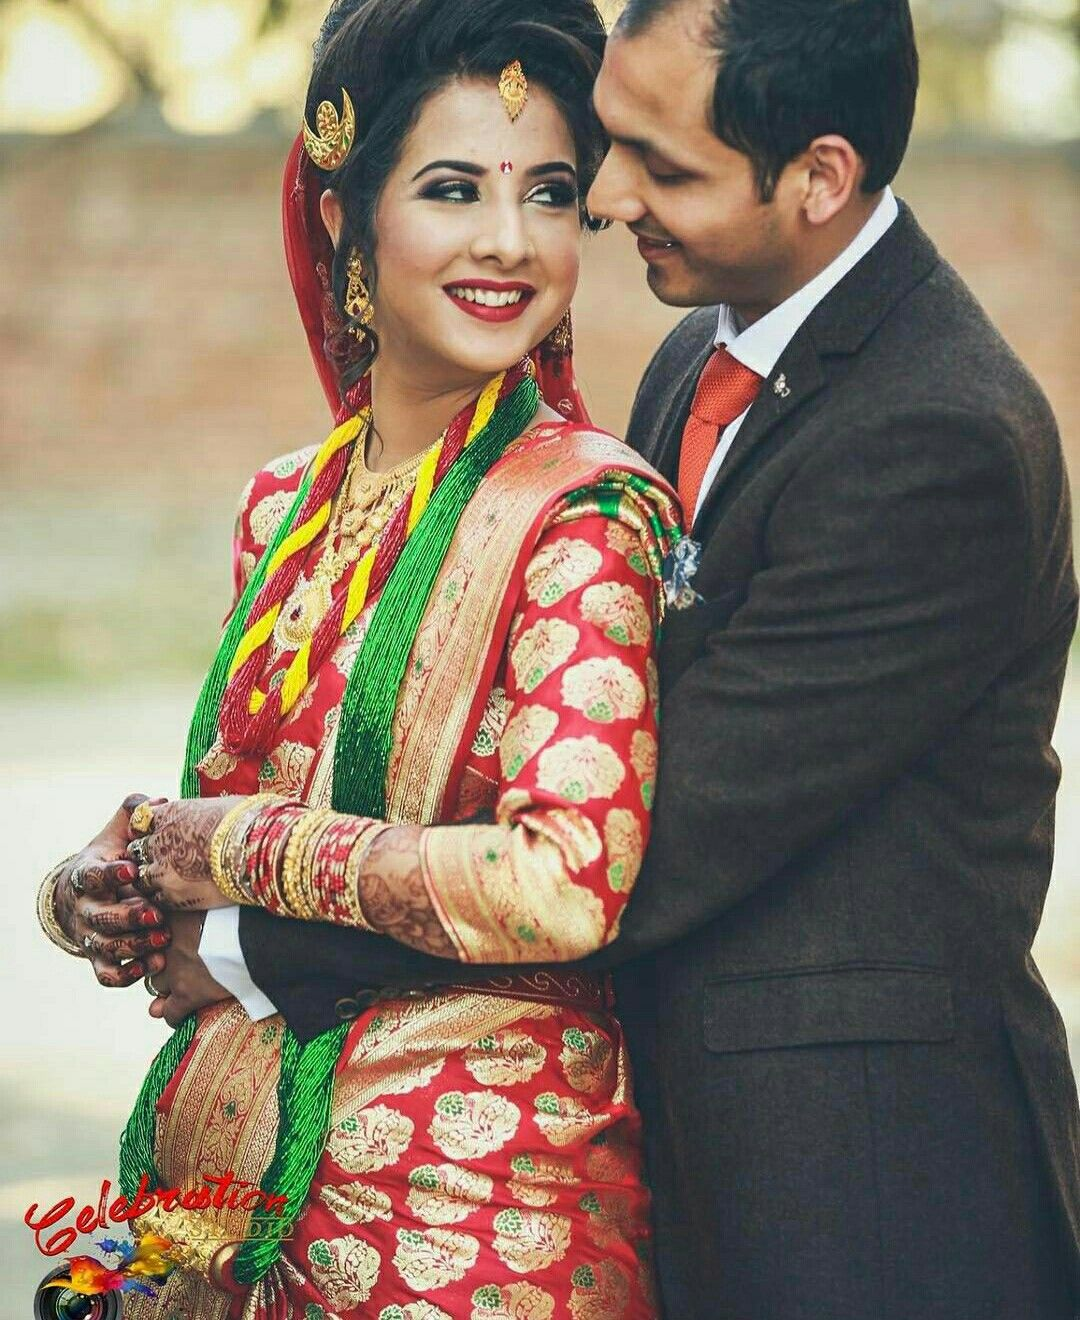 #nepali #wedding #tradition #nepal #marriage #bride